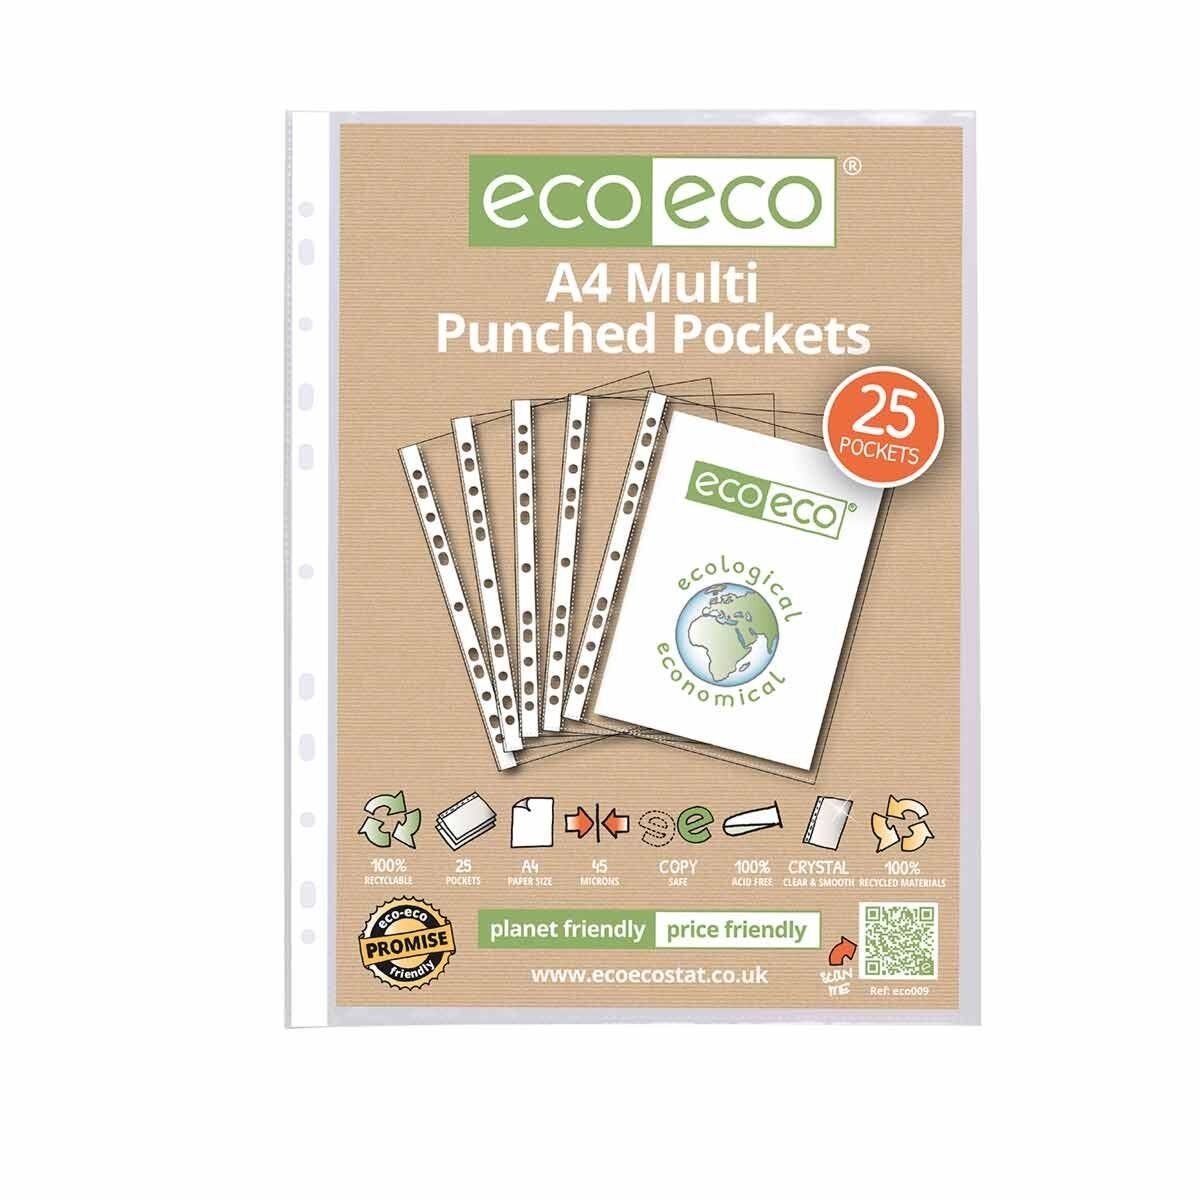 eco eco Multi-Punched Pockets A4 Pack of 25